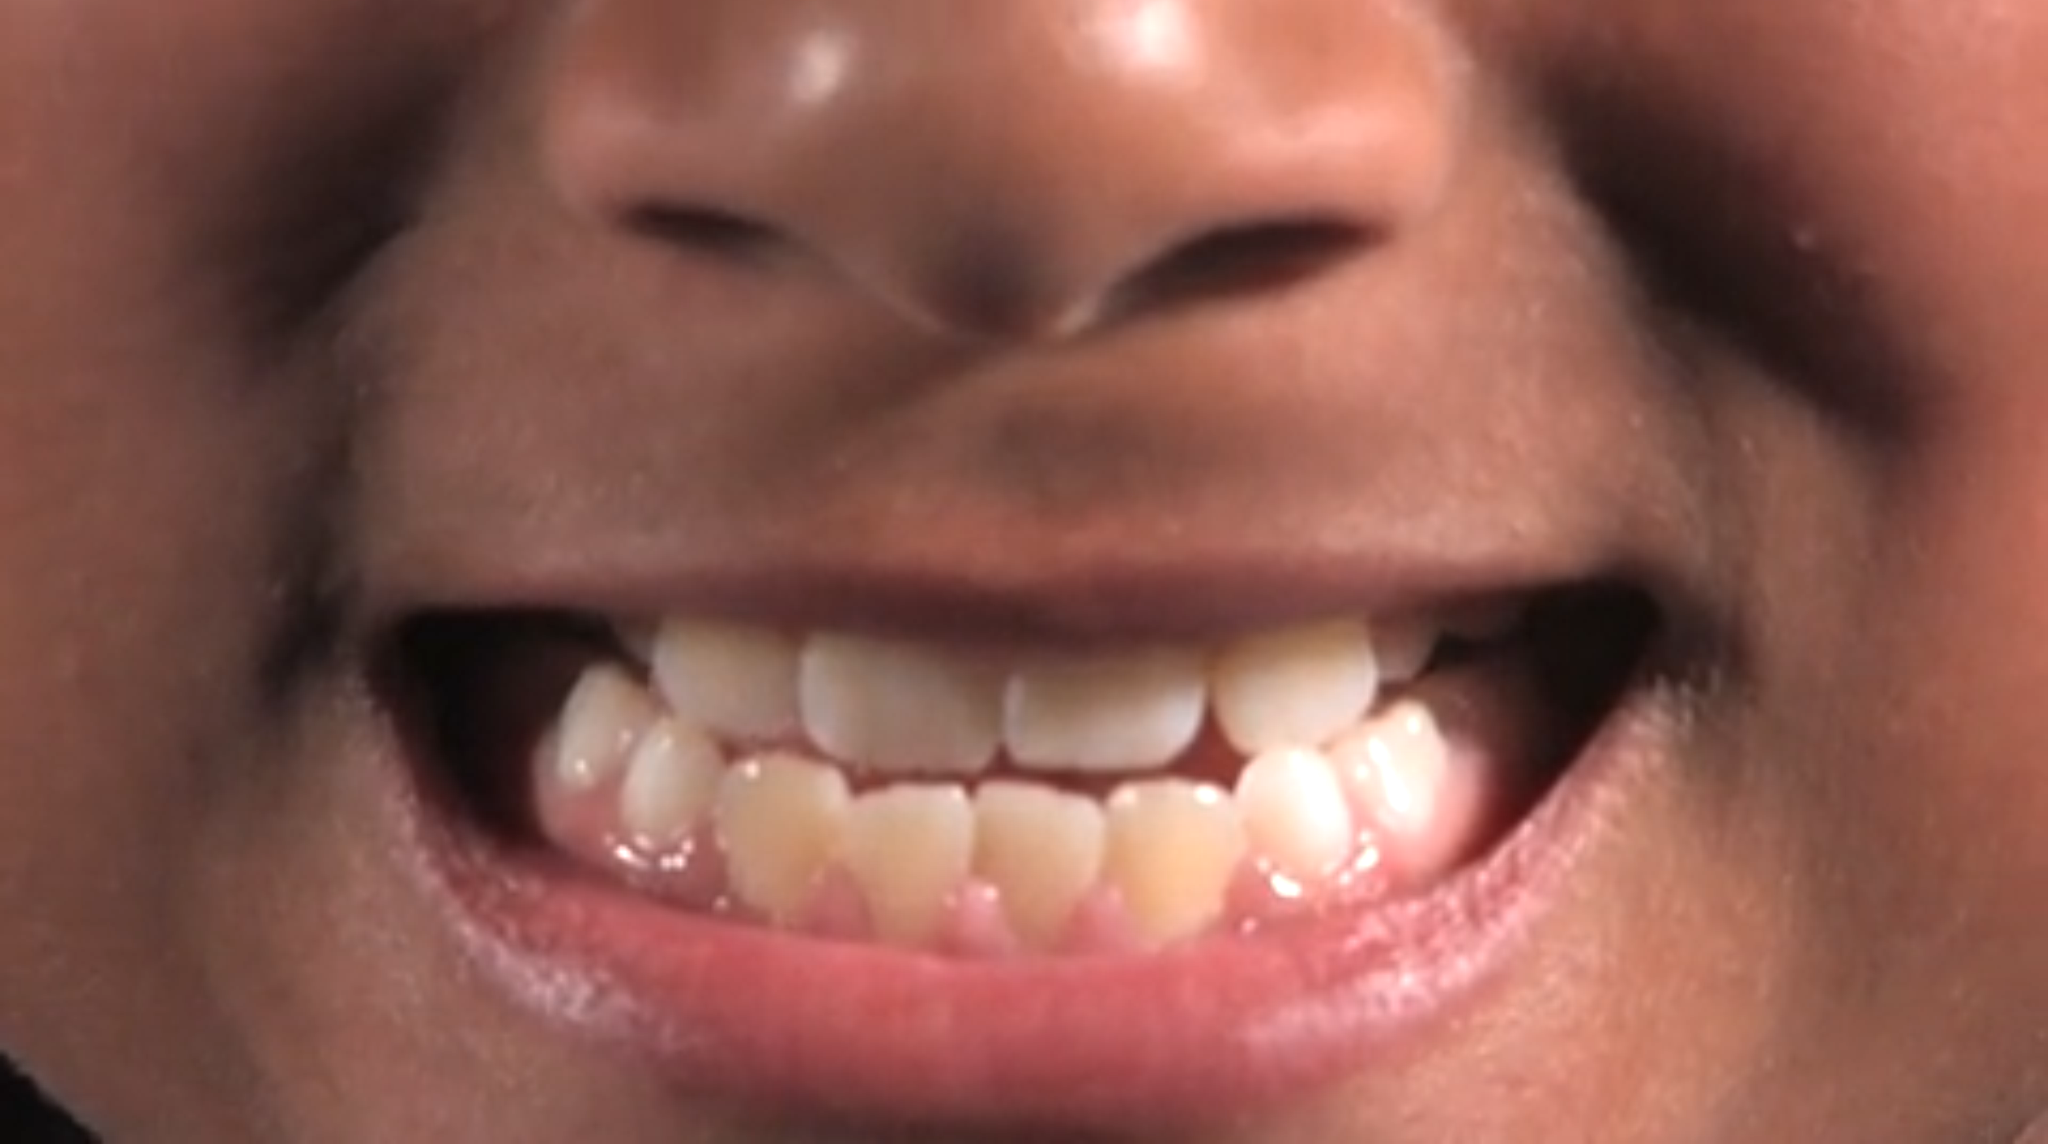 child_mouth_smile